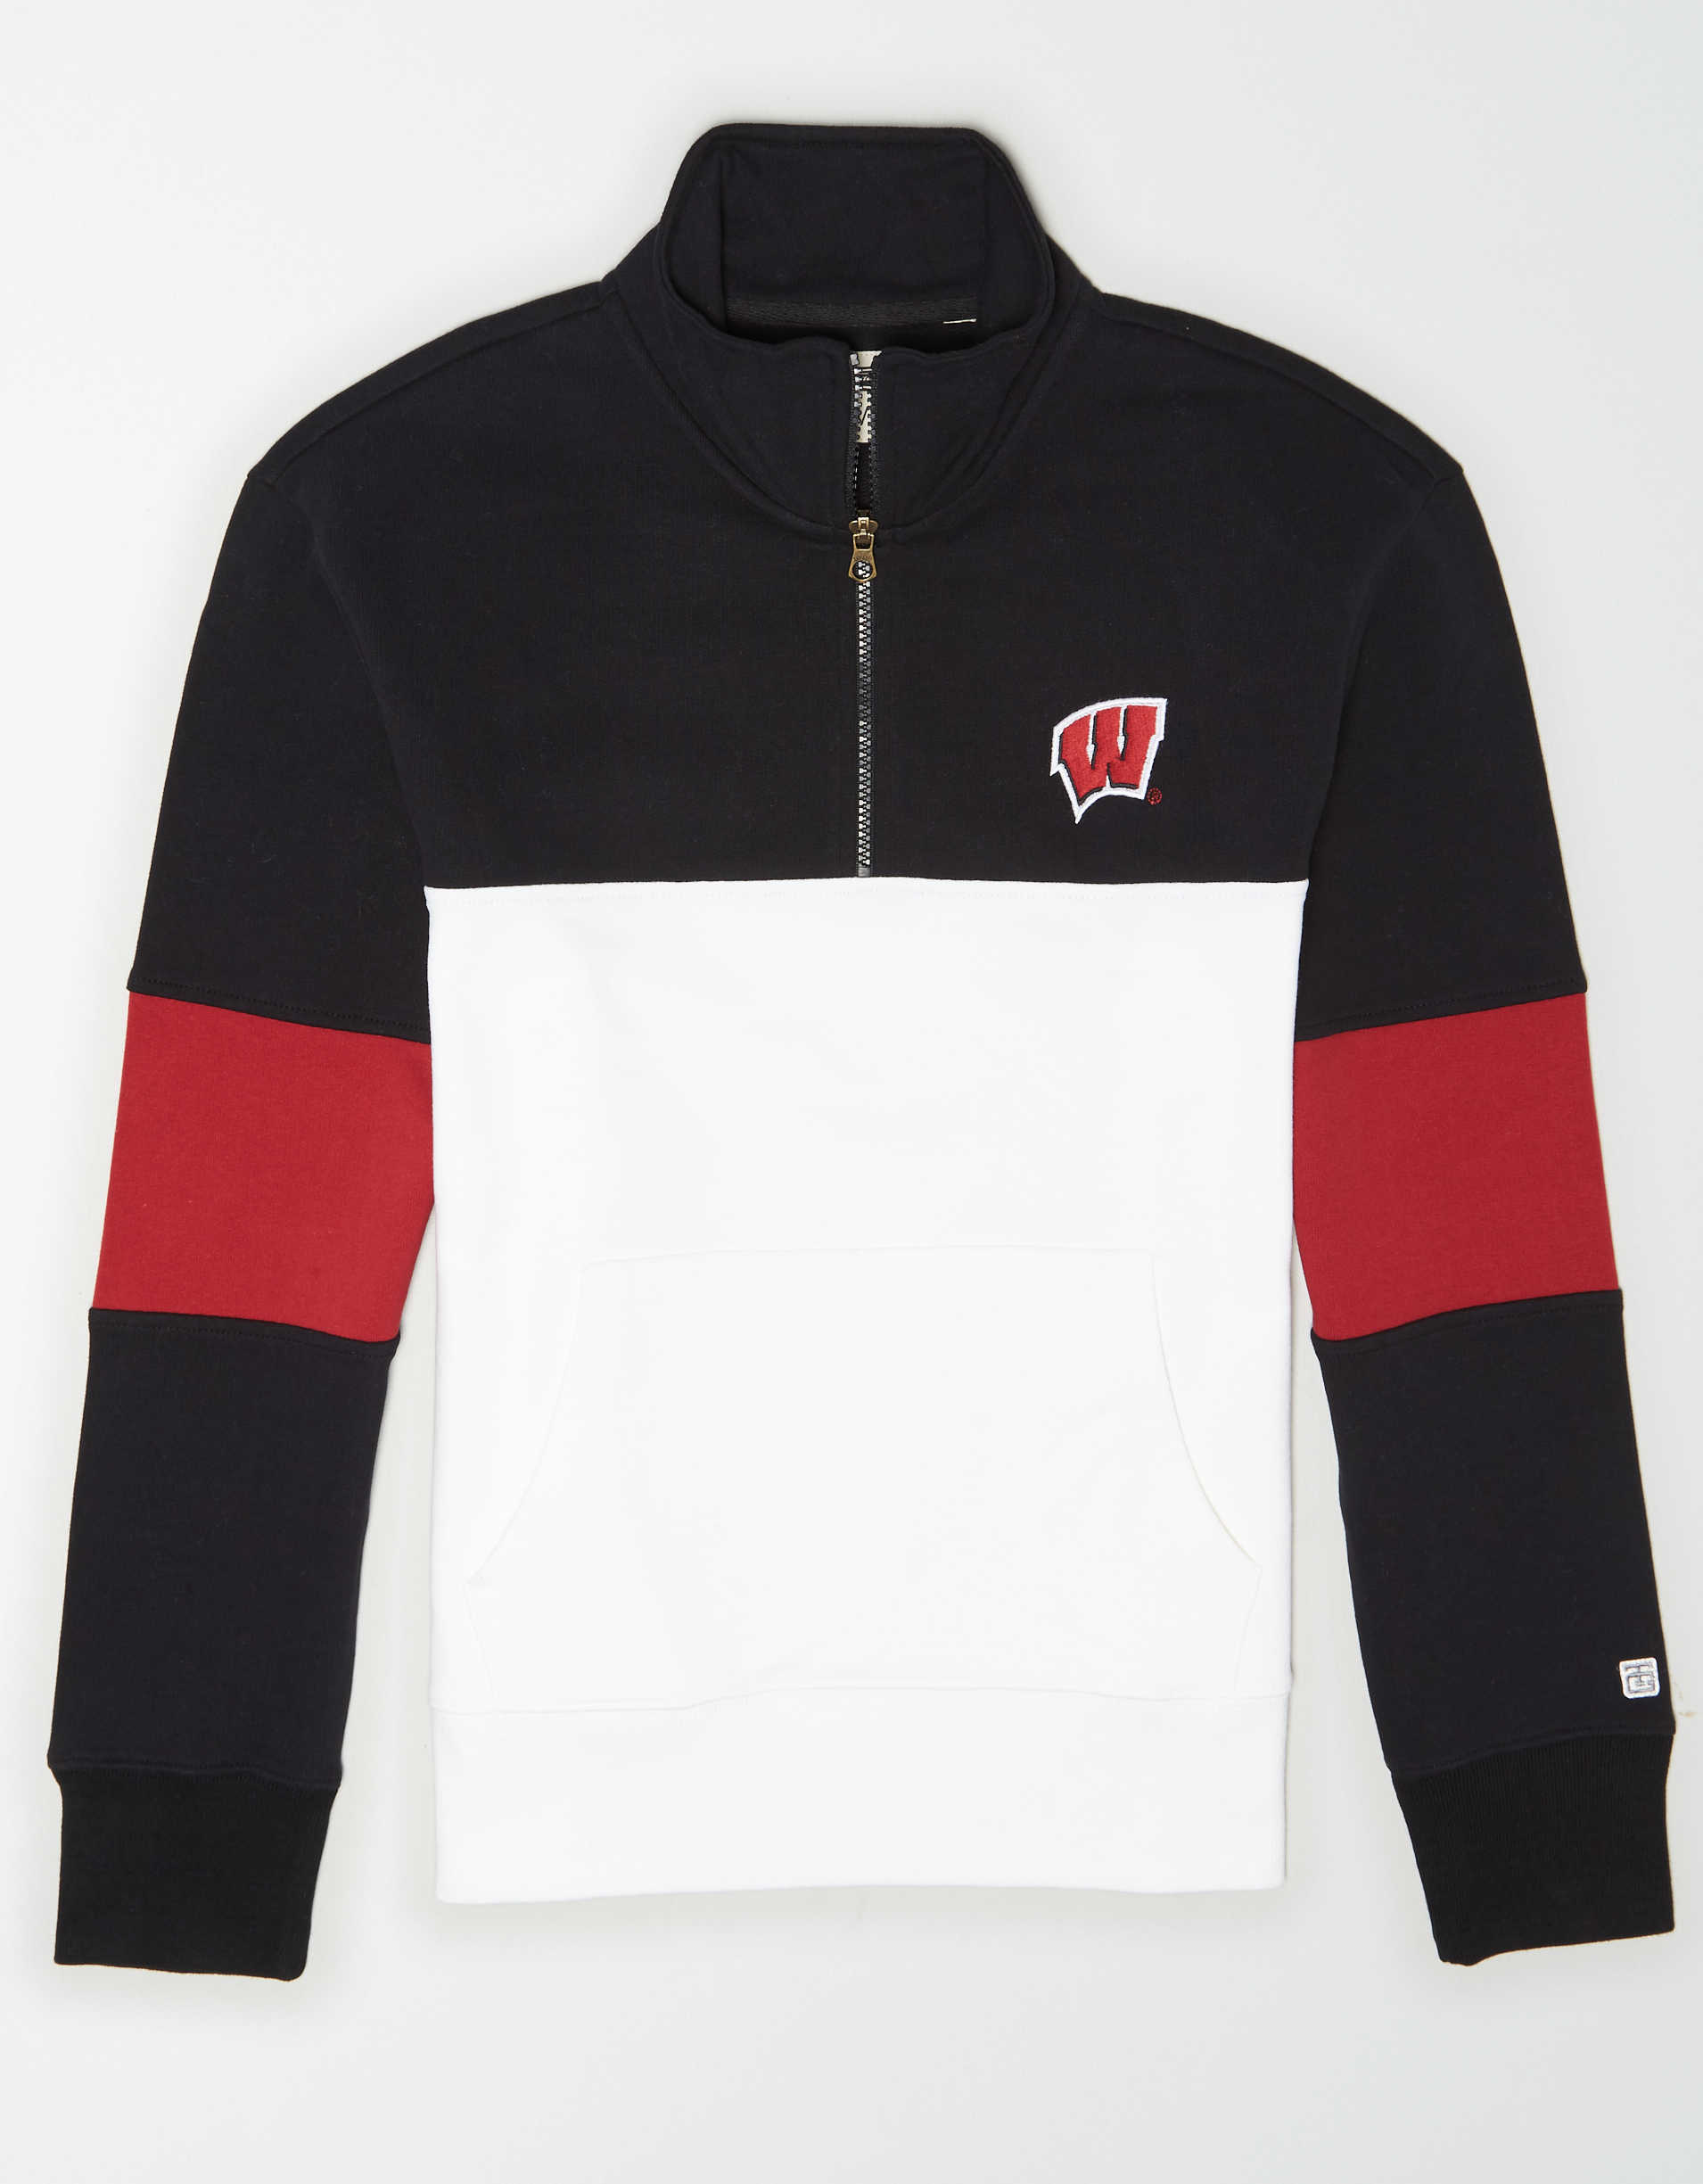 Tailgate Men's Wisconsin Badgers Quarter-Zip Sweatshirt